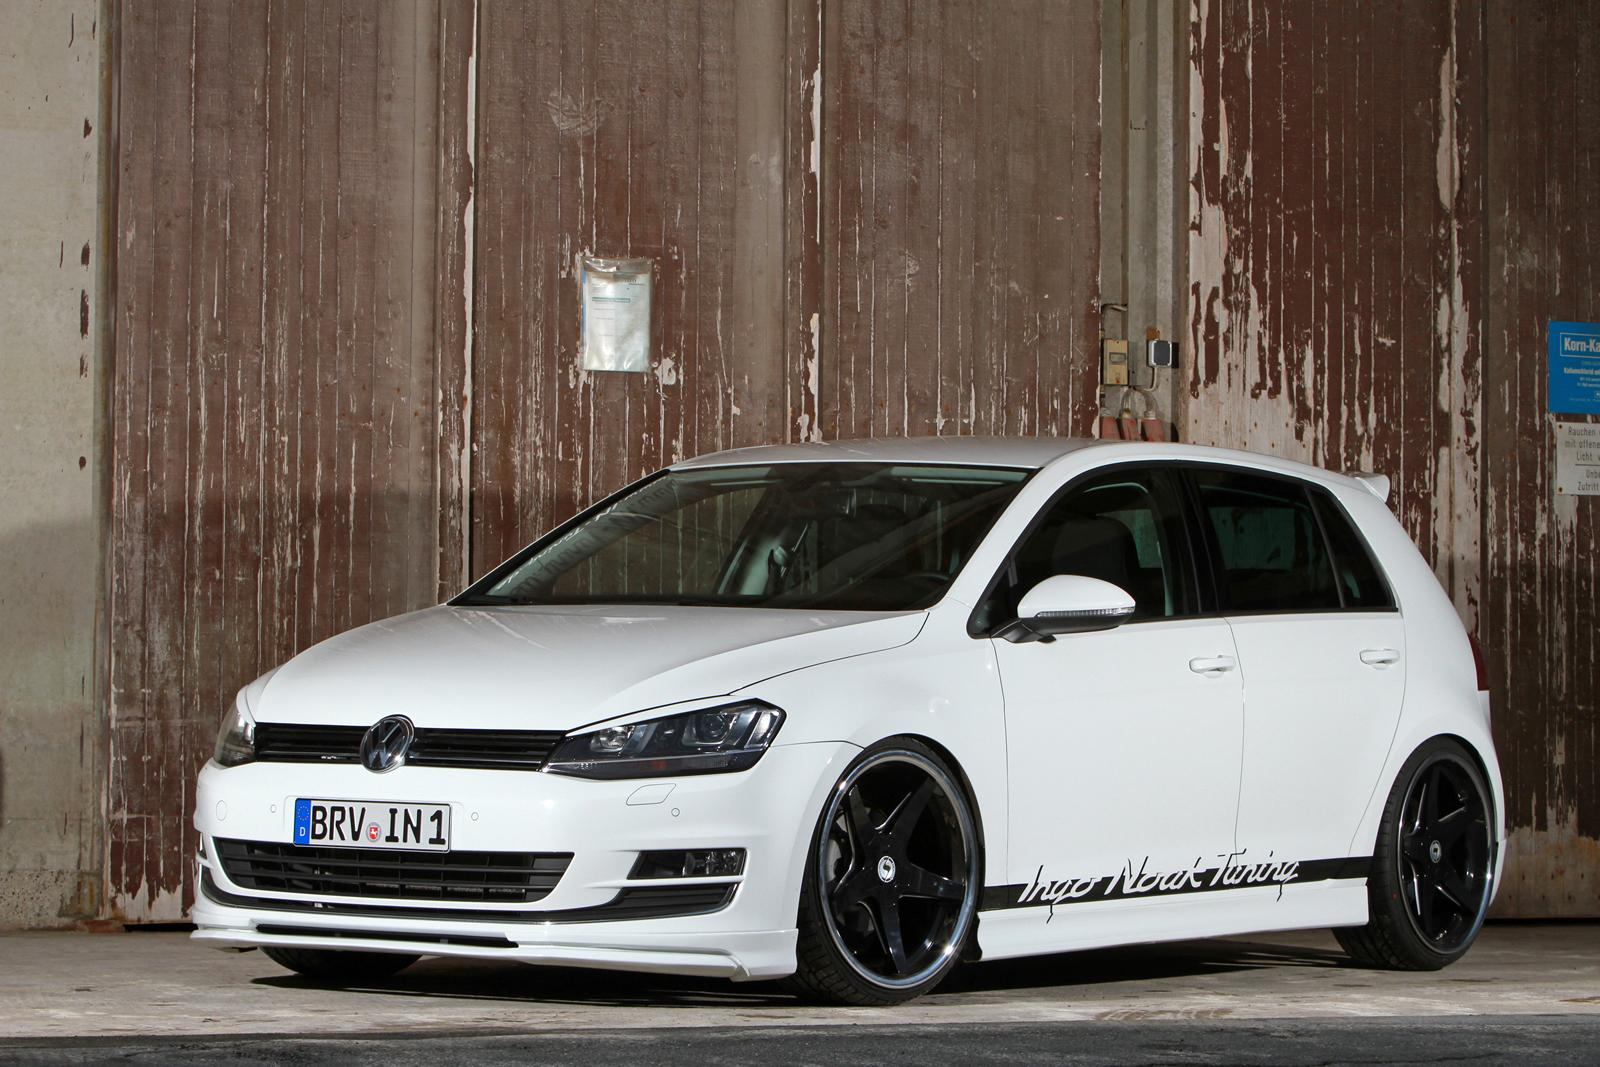 ingo noak vw golf 7 tuning 1 vw tuning mag. Black Bedroom Furniture Sets. Home Design Ideas